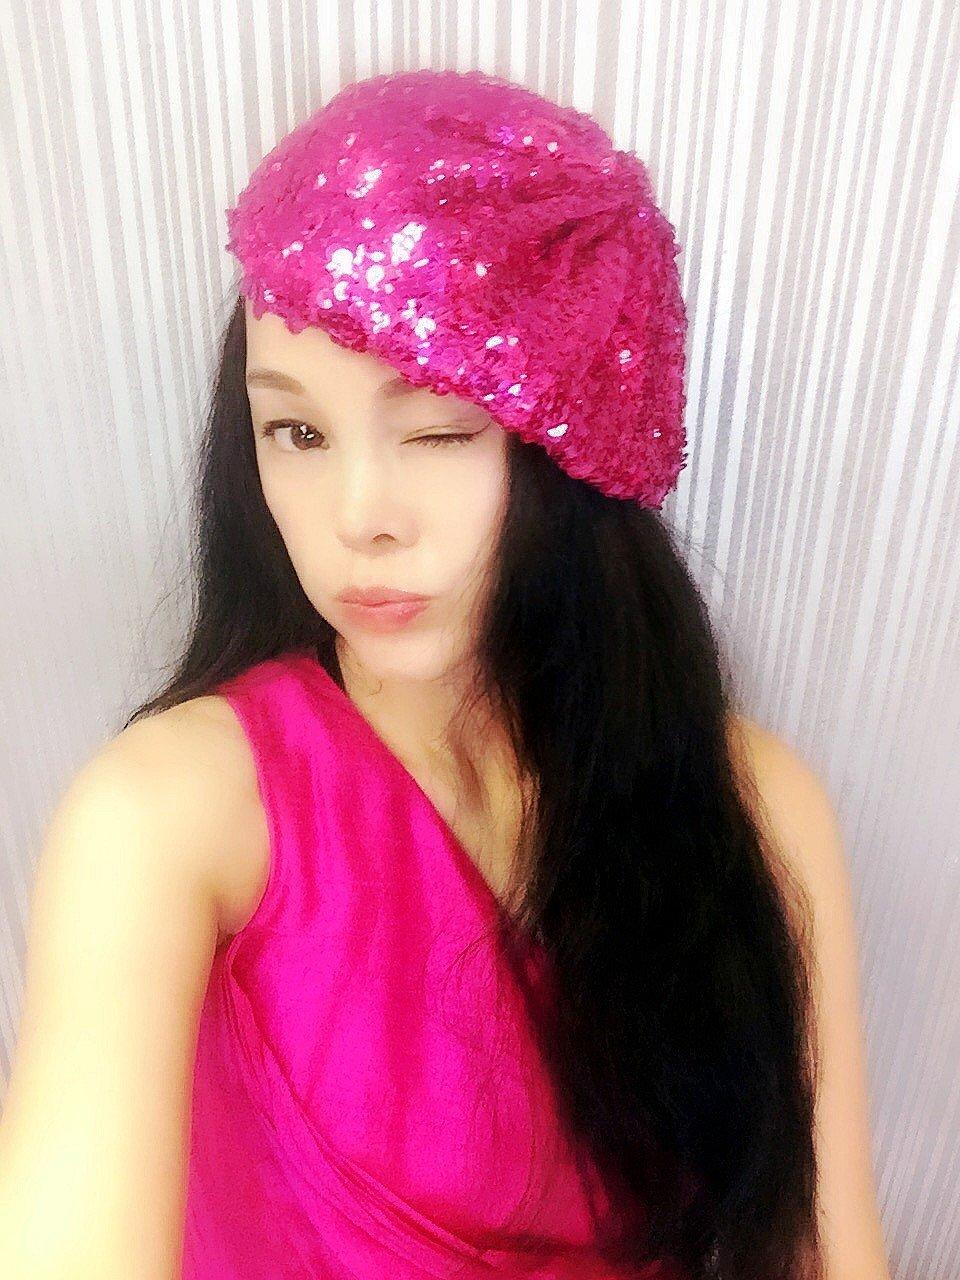 Peachblow Sequin Beret,Caps, Hats, Womens Hats, Sequined Hat, Beret, Gimme Cap, Fashion Hats, Personality Hats, Show Hats, Beautiful CapHipster,Fashion,Gift ,Show, Party ,Holiday